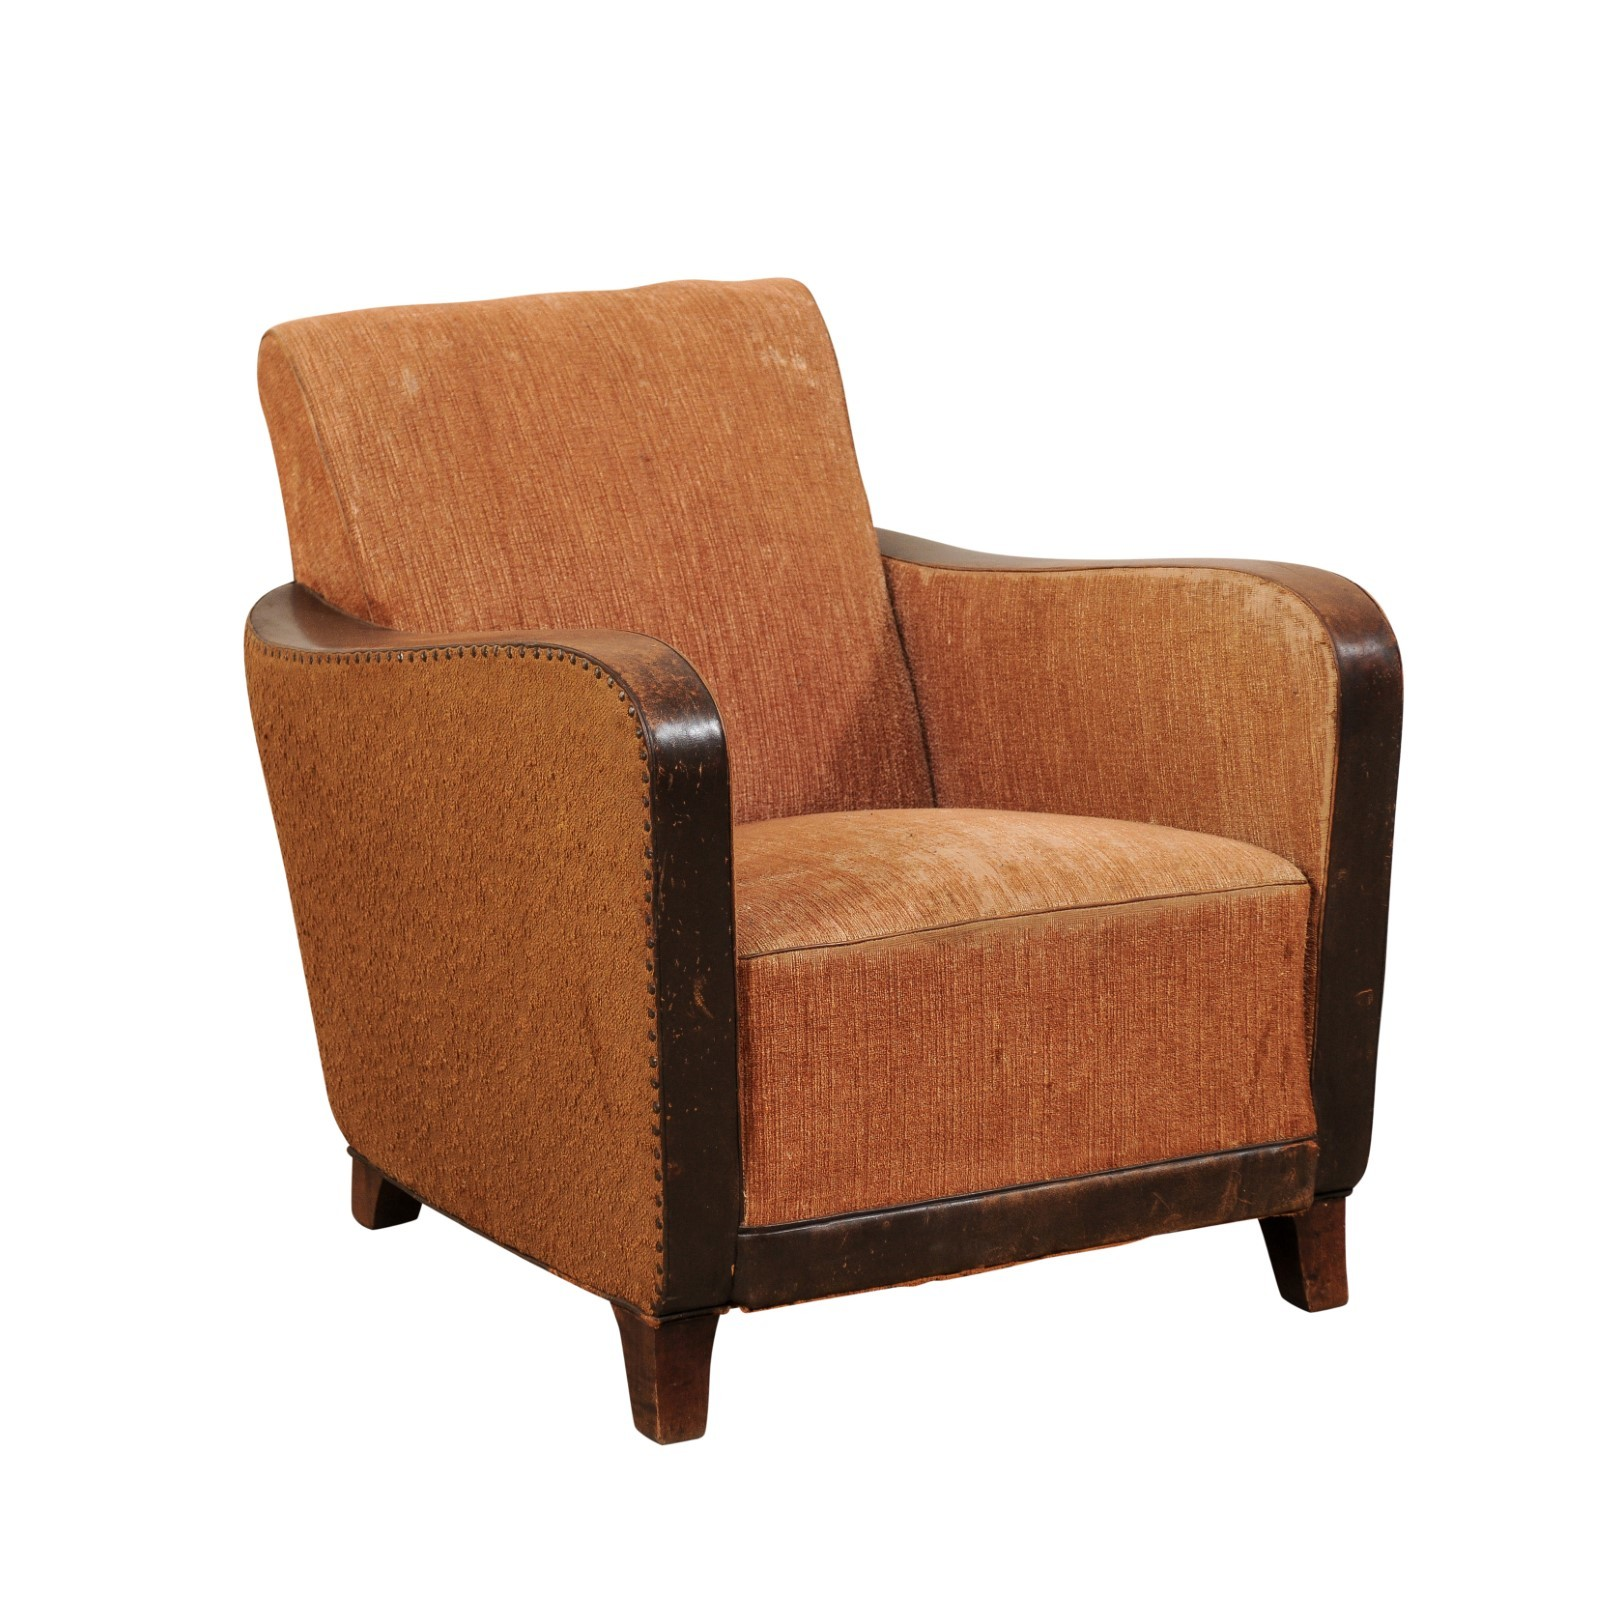 Swedish Art Deco Club Chair